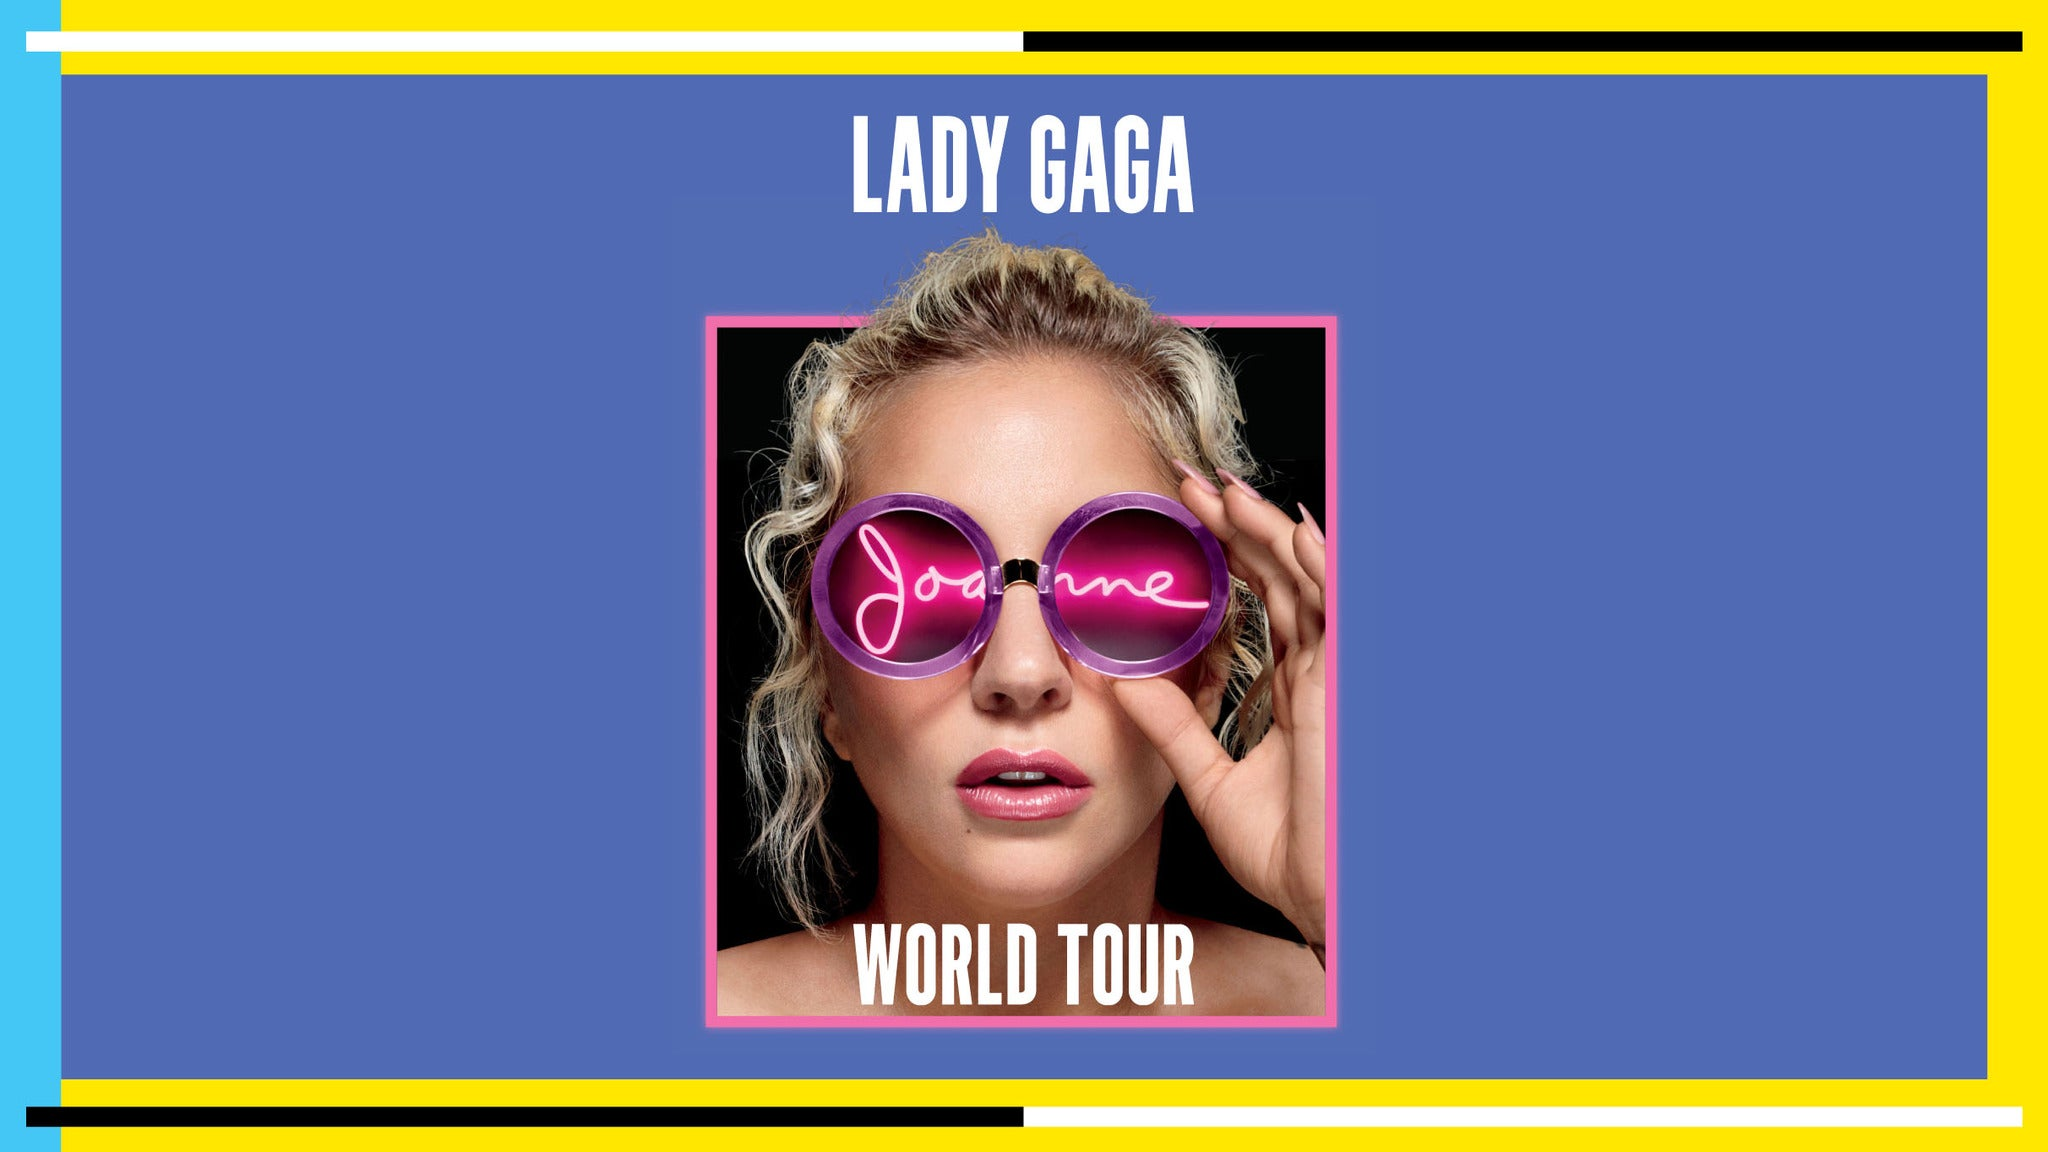 Lady Gaga Joanne World Tour at Mohegan Sun Arena - Uncasville, CT 06382